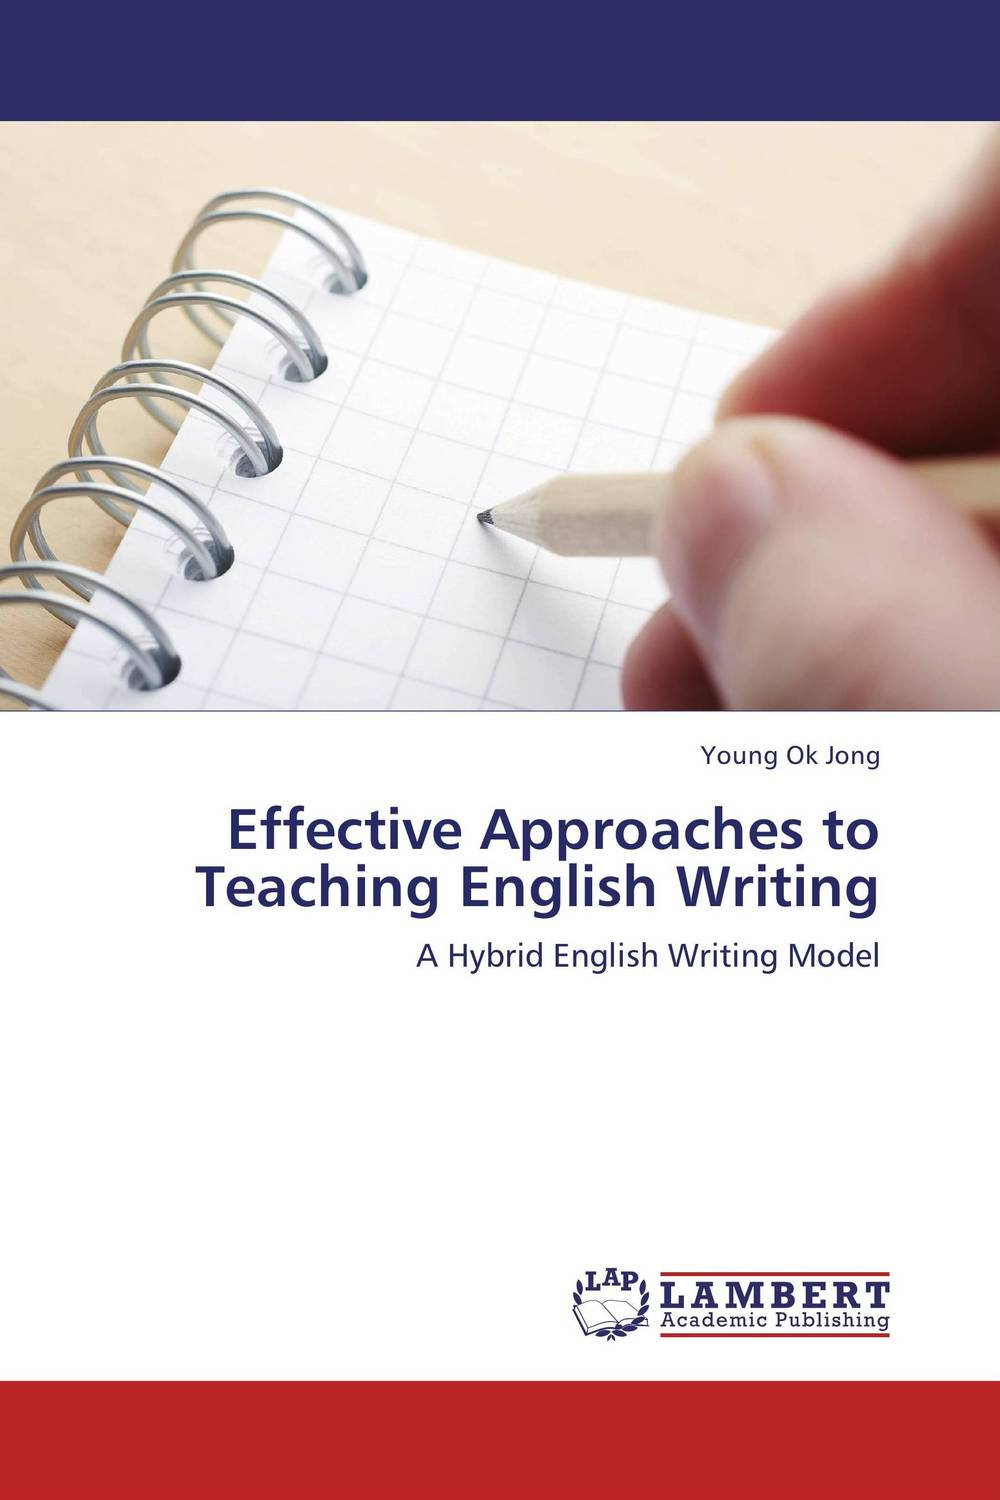 Effective Approaches to Teaching English Writing